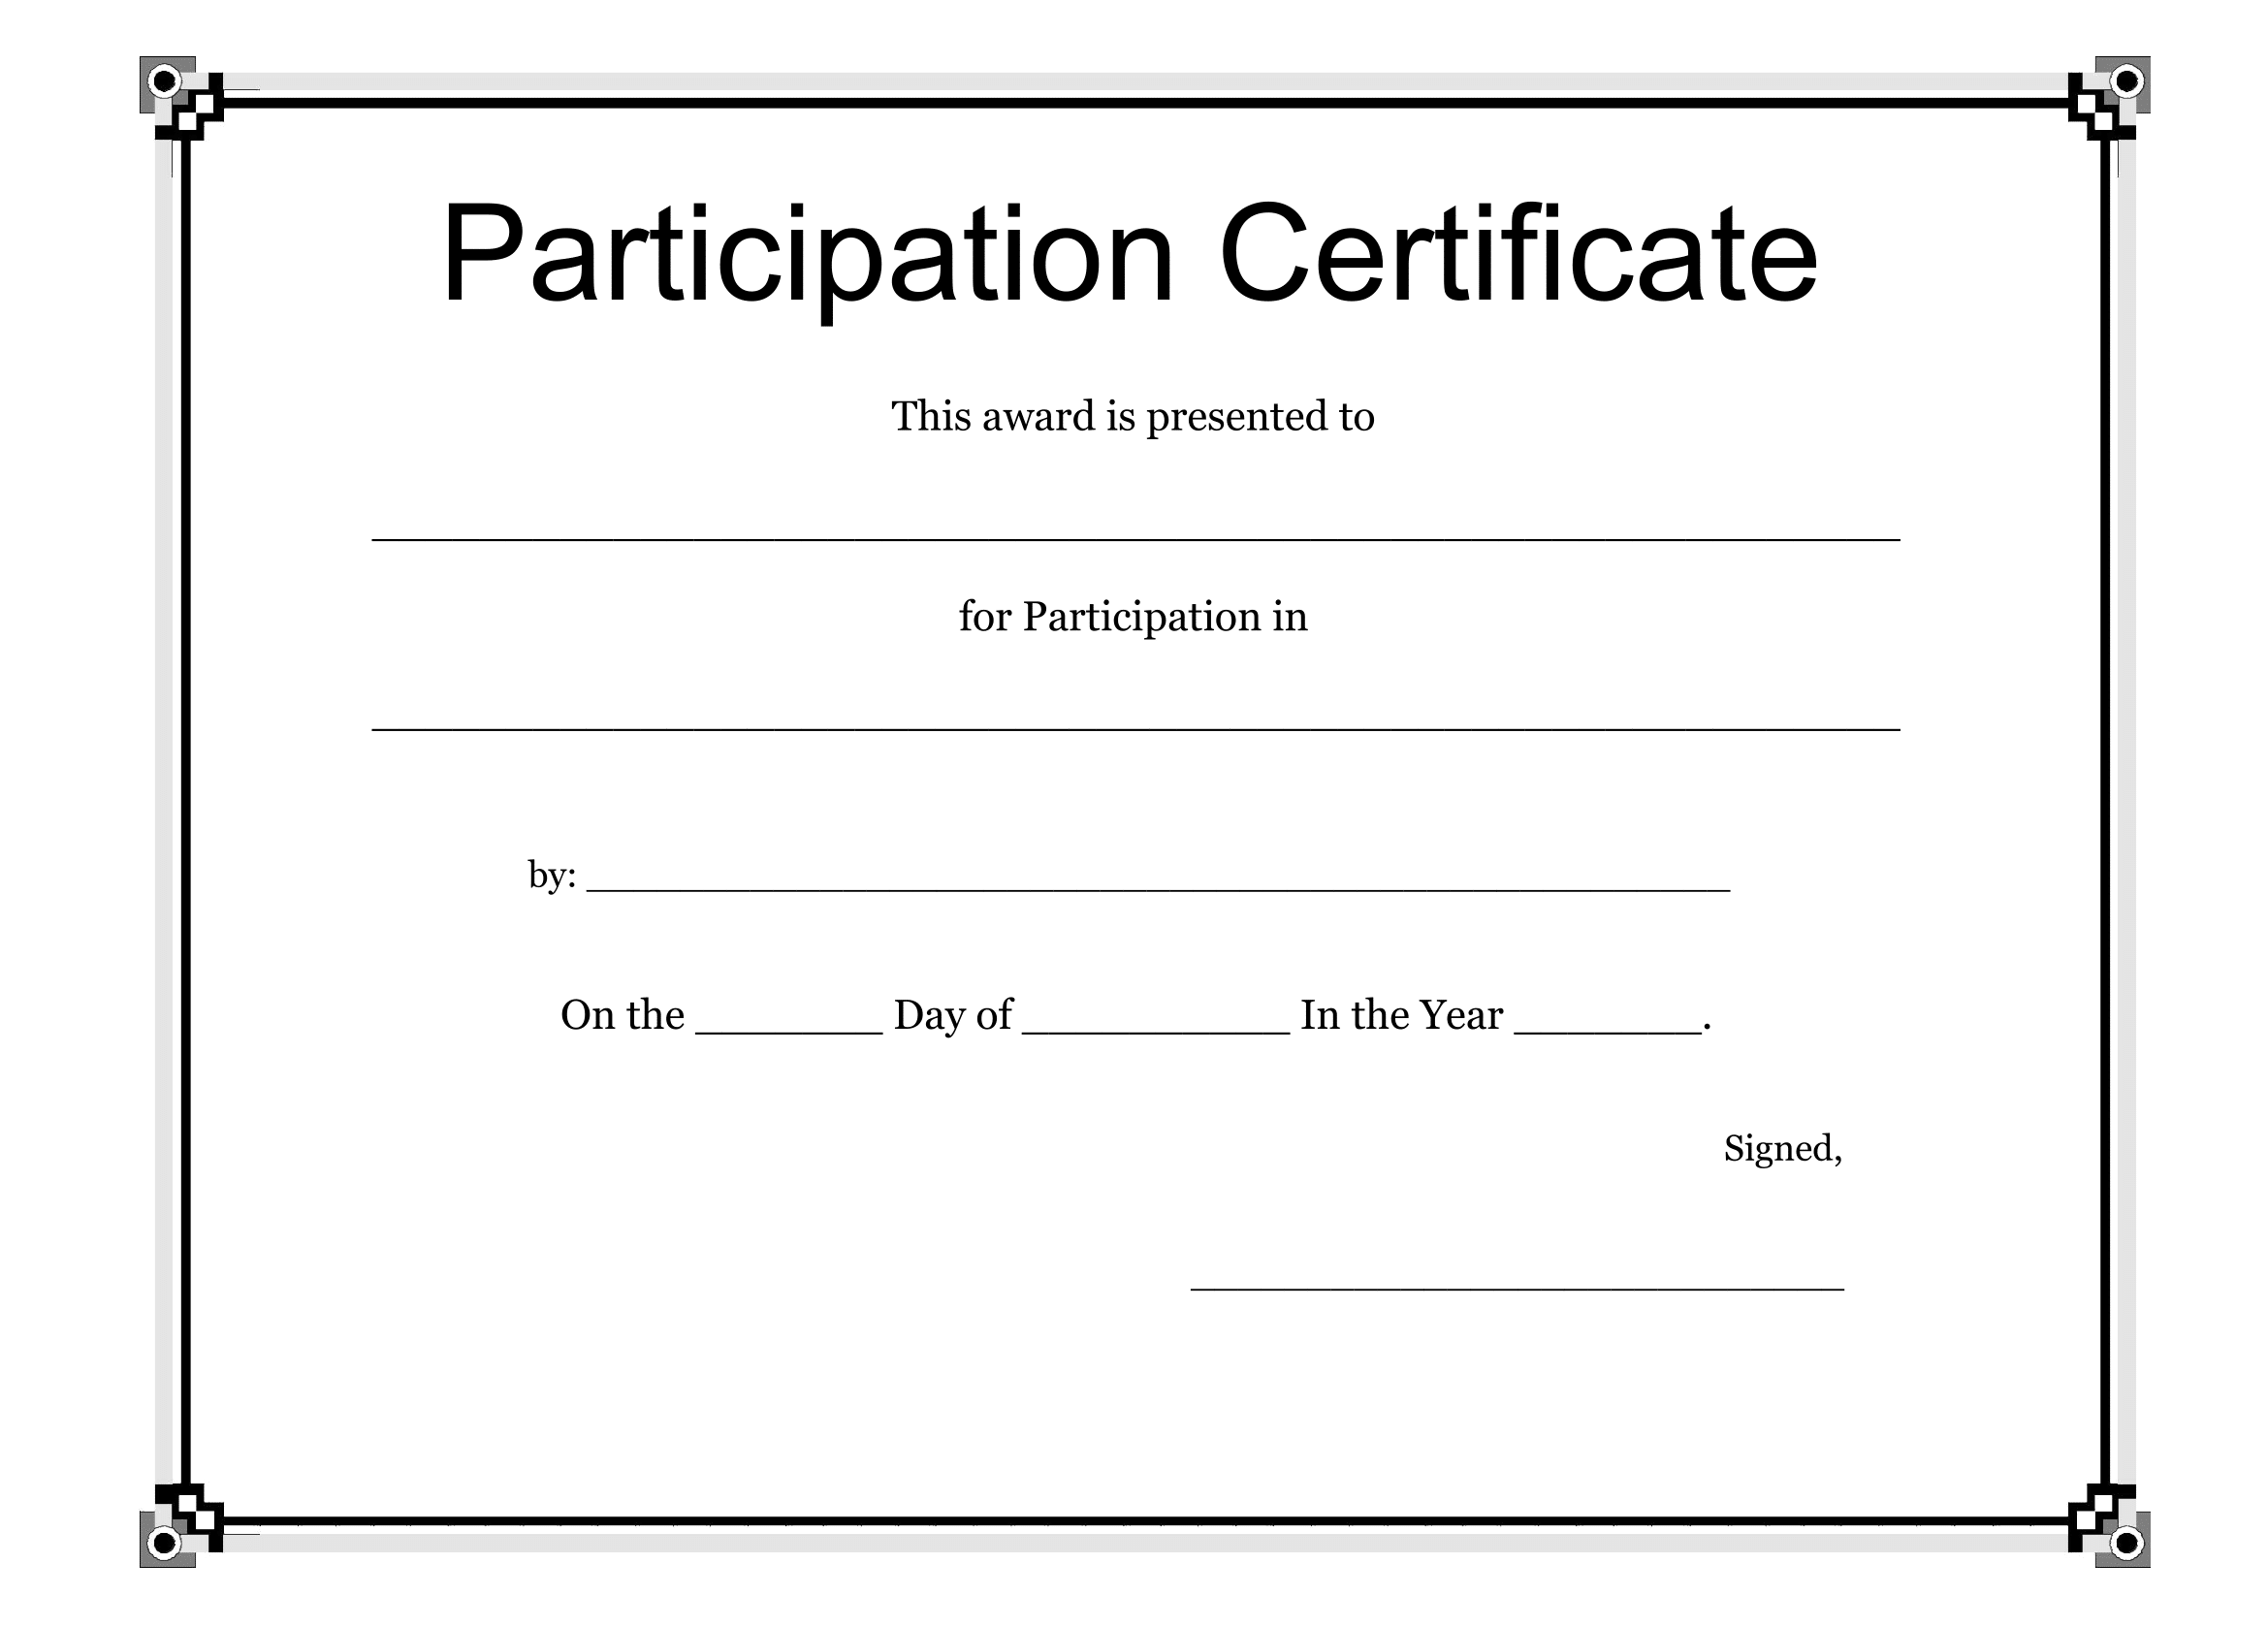 Participation certificate template free download participation certificate template free download xflitez Choice Image